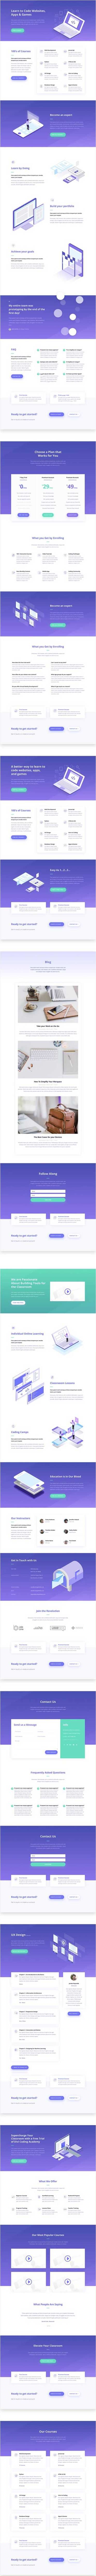 Free divi layout for online courses